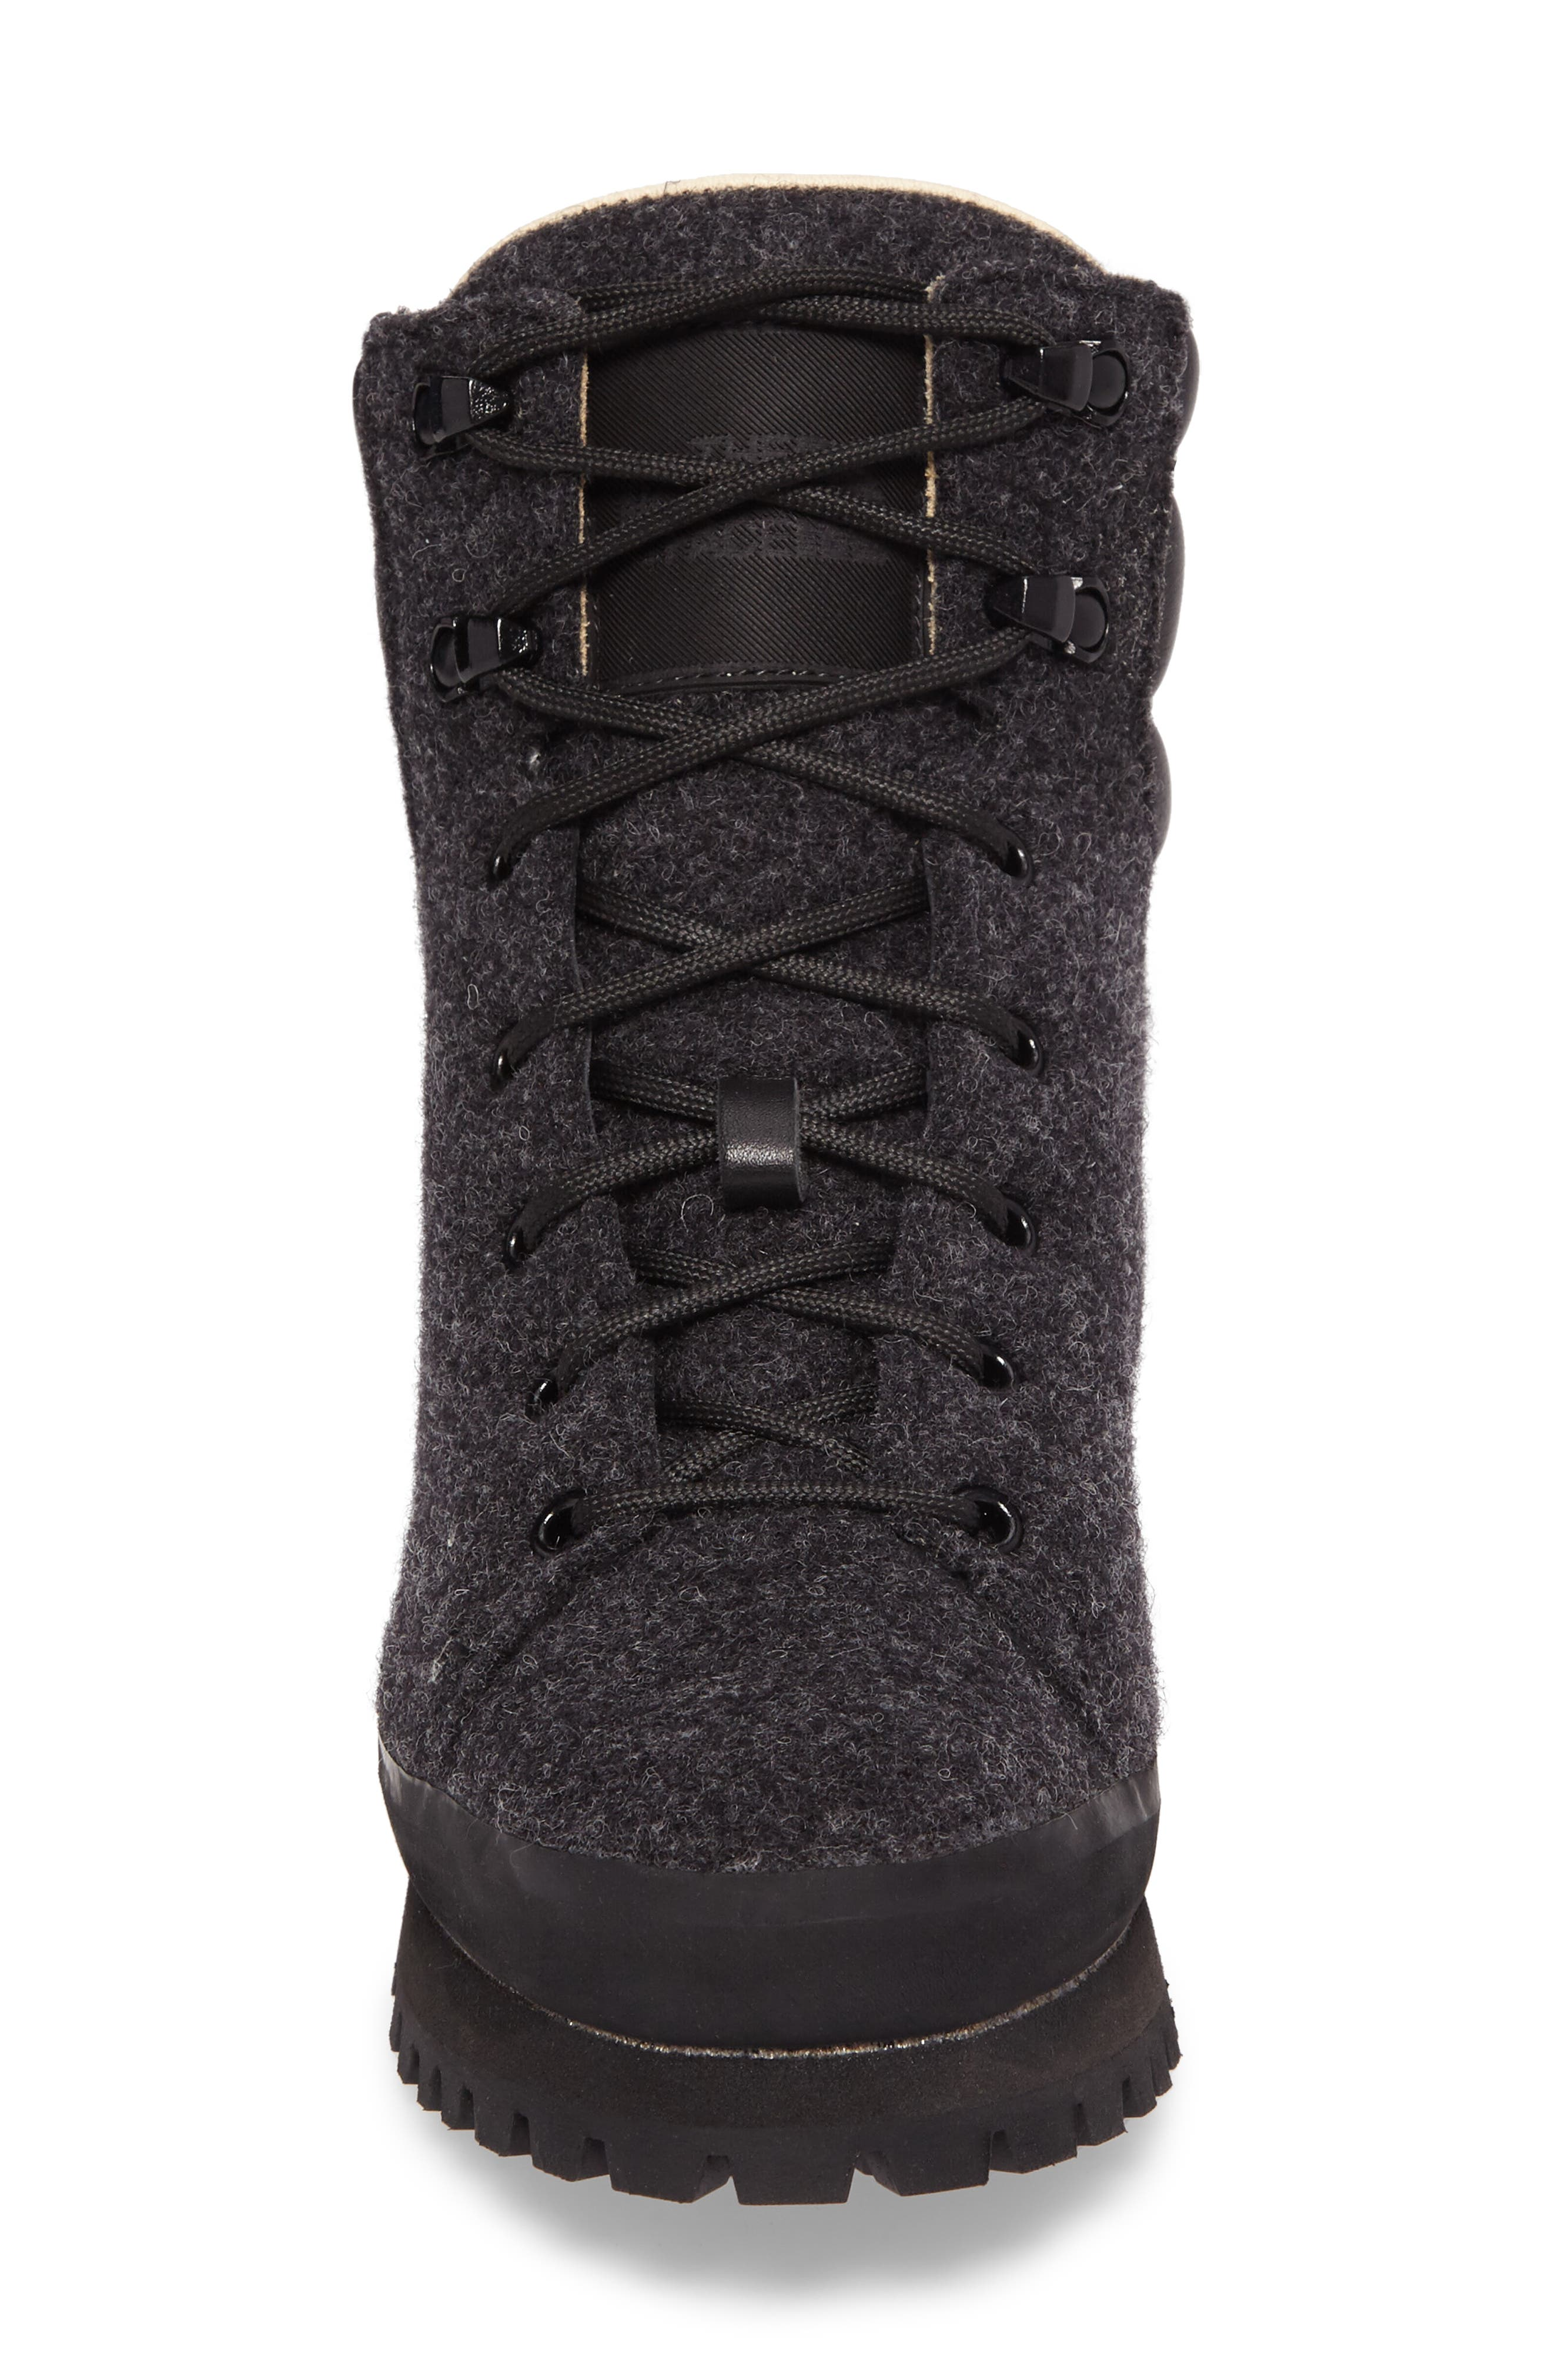 Cryos Hiker Boot,                             Alternate thumbnail 4, color,                             Tnf Black/ Tnf Black